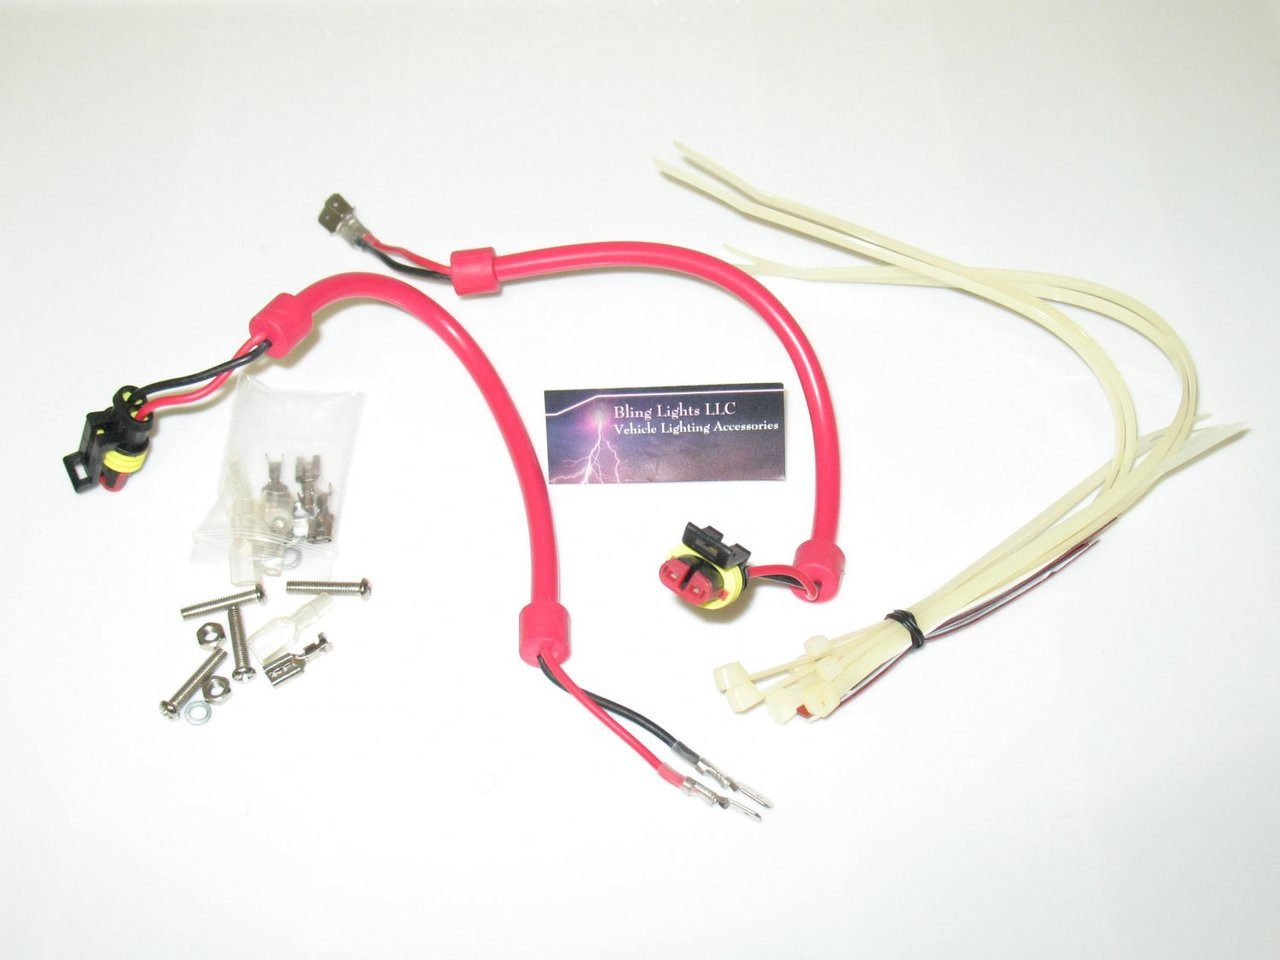 medium resolution of h1 h3 h7 hid conversion kit universal ballast harness wiring accessories blinglights com